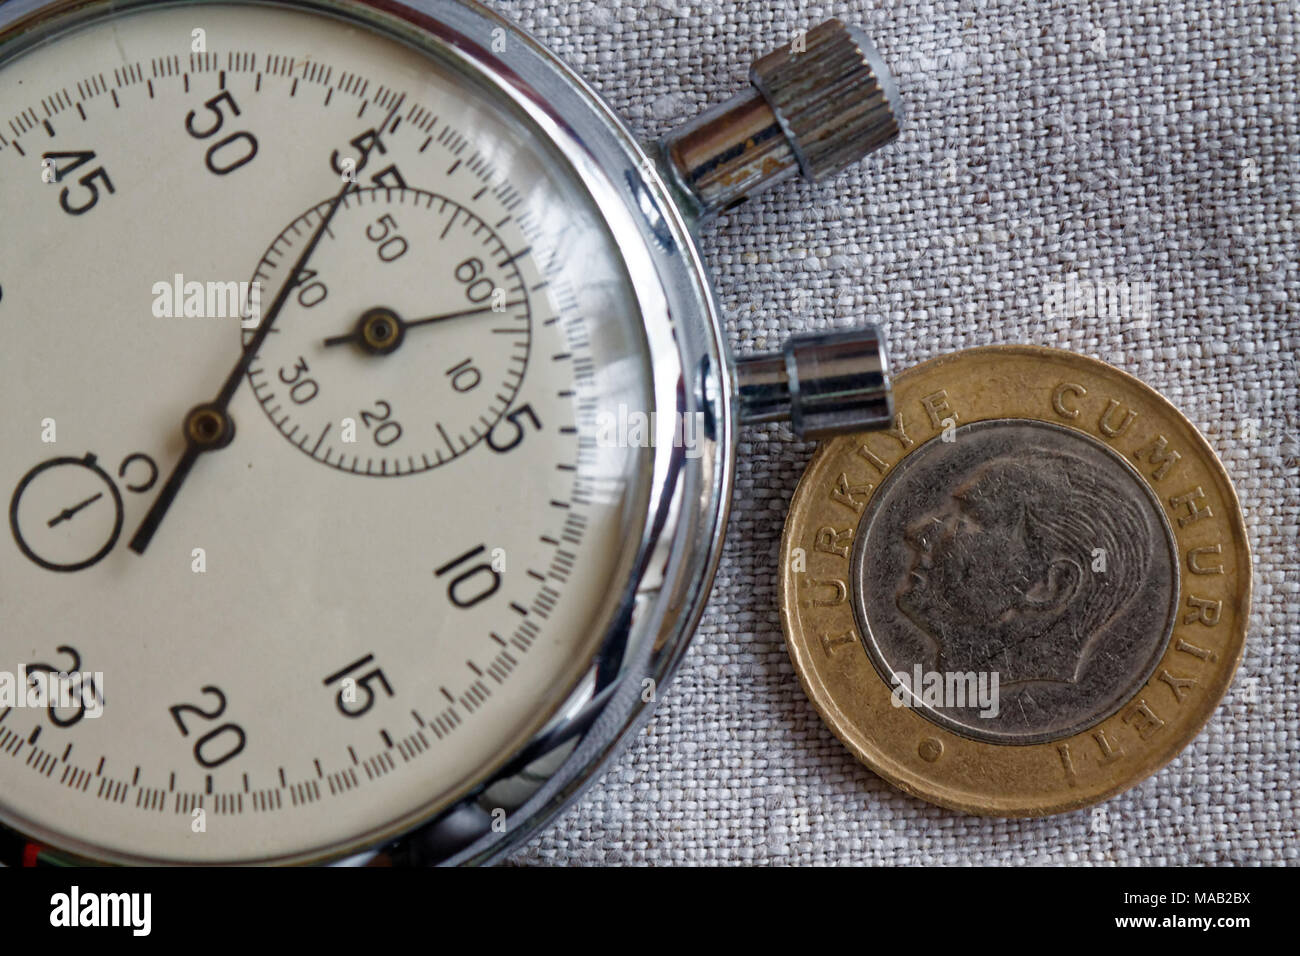 Turkish coin with a denomination of 1 lira (back side) and stopwatch on gray linen backdrop - business background Stock Photo